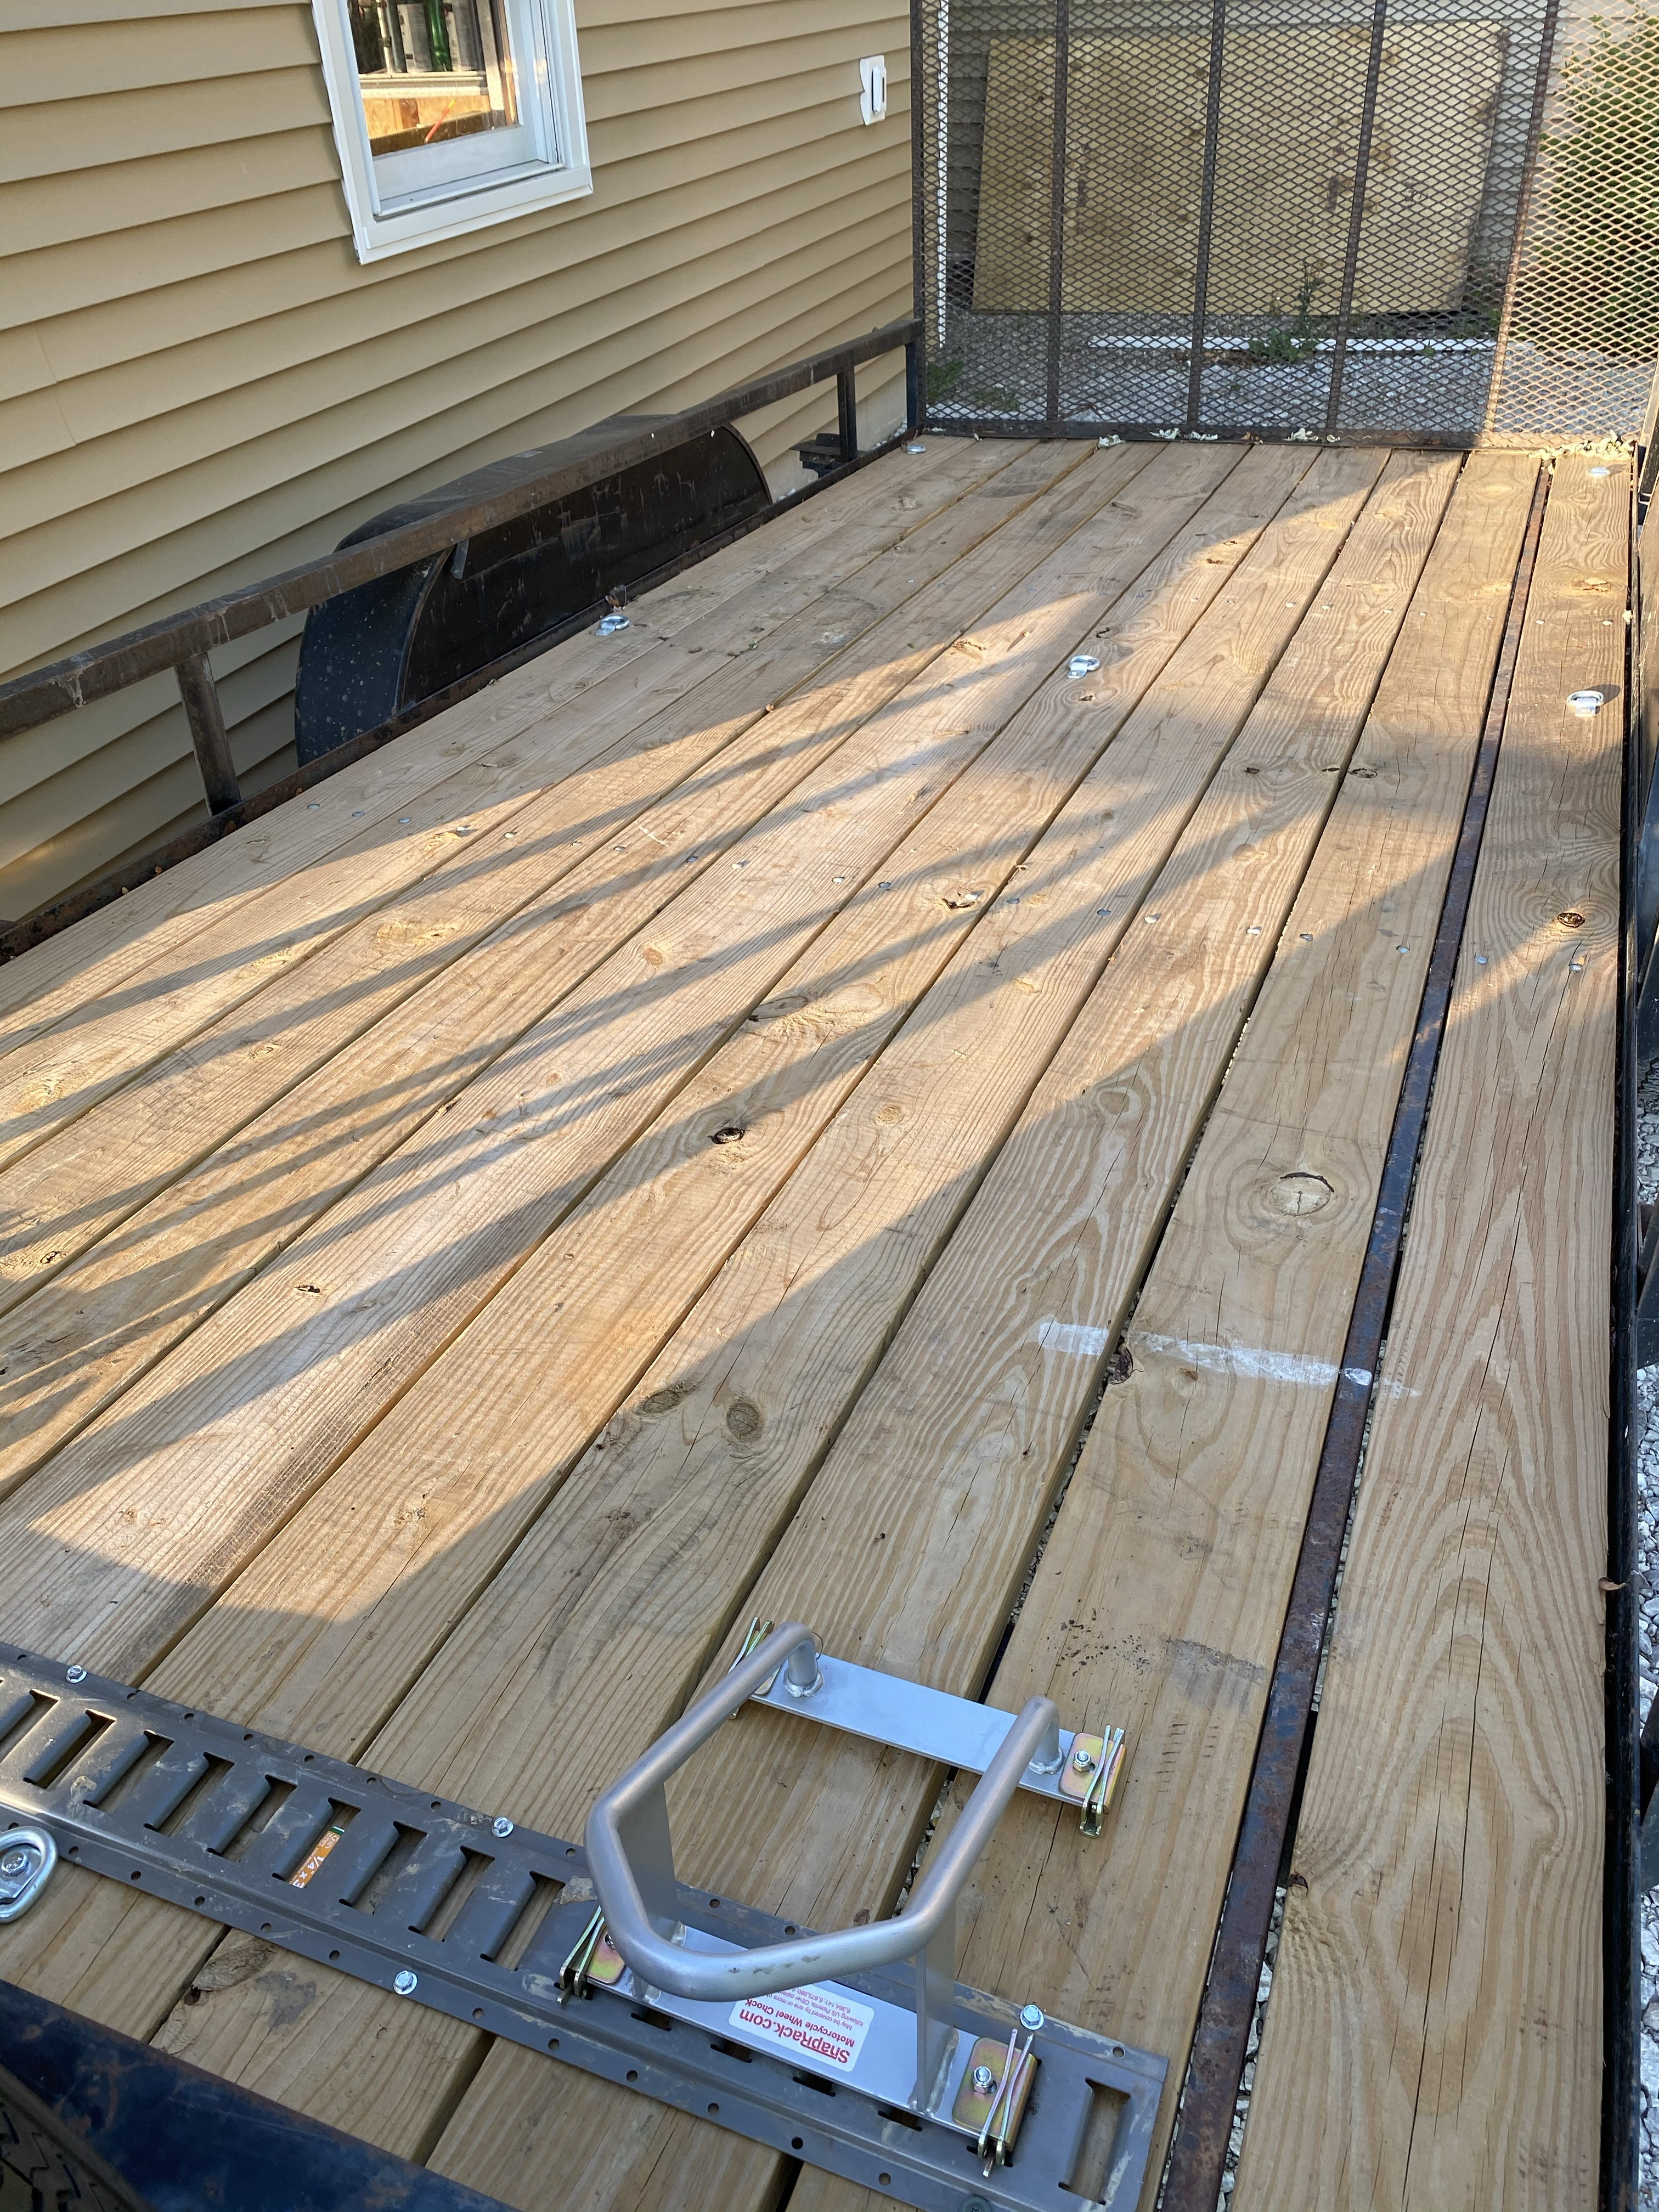 New decking with 8 tie-down points.. 2010